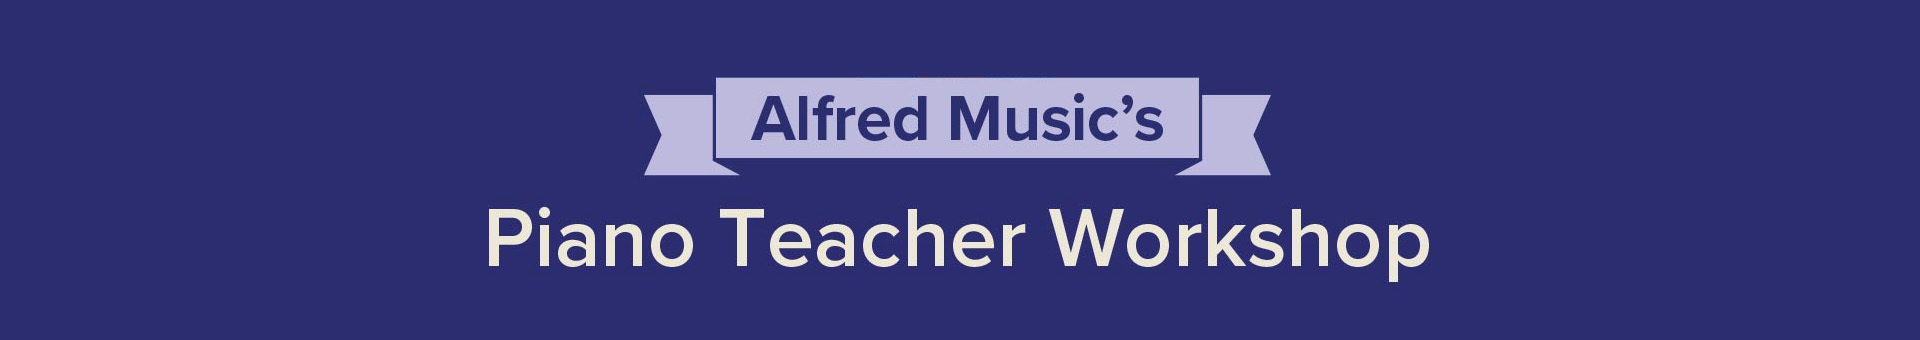 Alfred Music's Piano Teacher Workshop